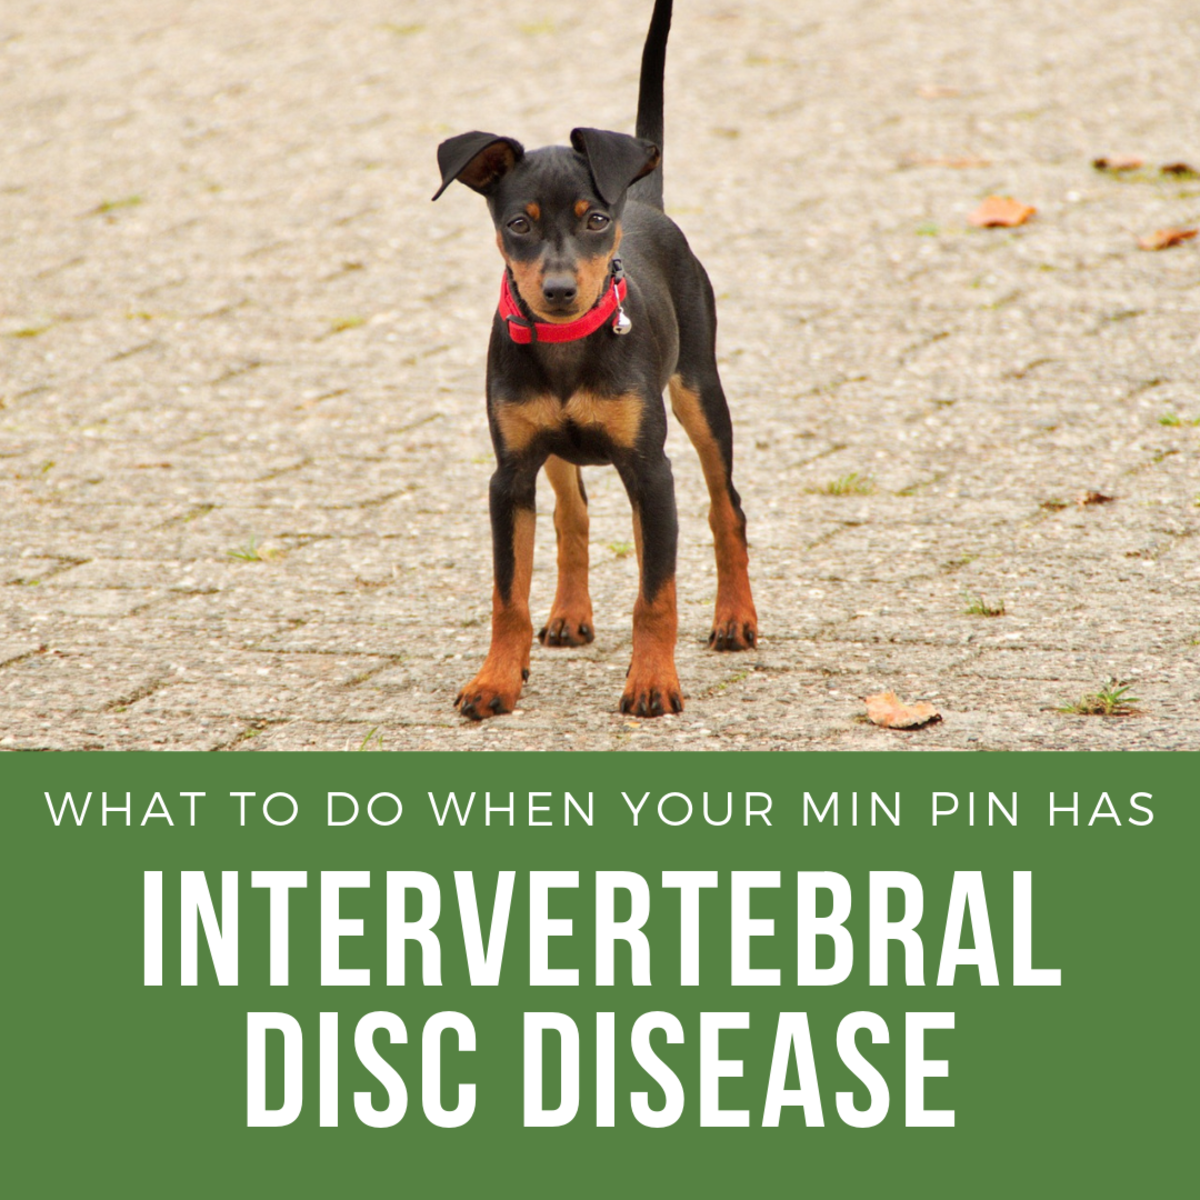 Does Your Min Pin Have Intervertebral Disc Disease?